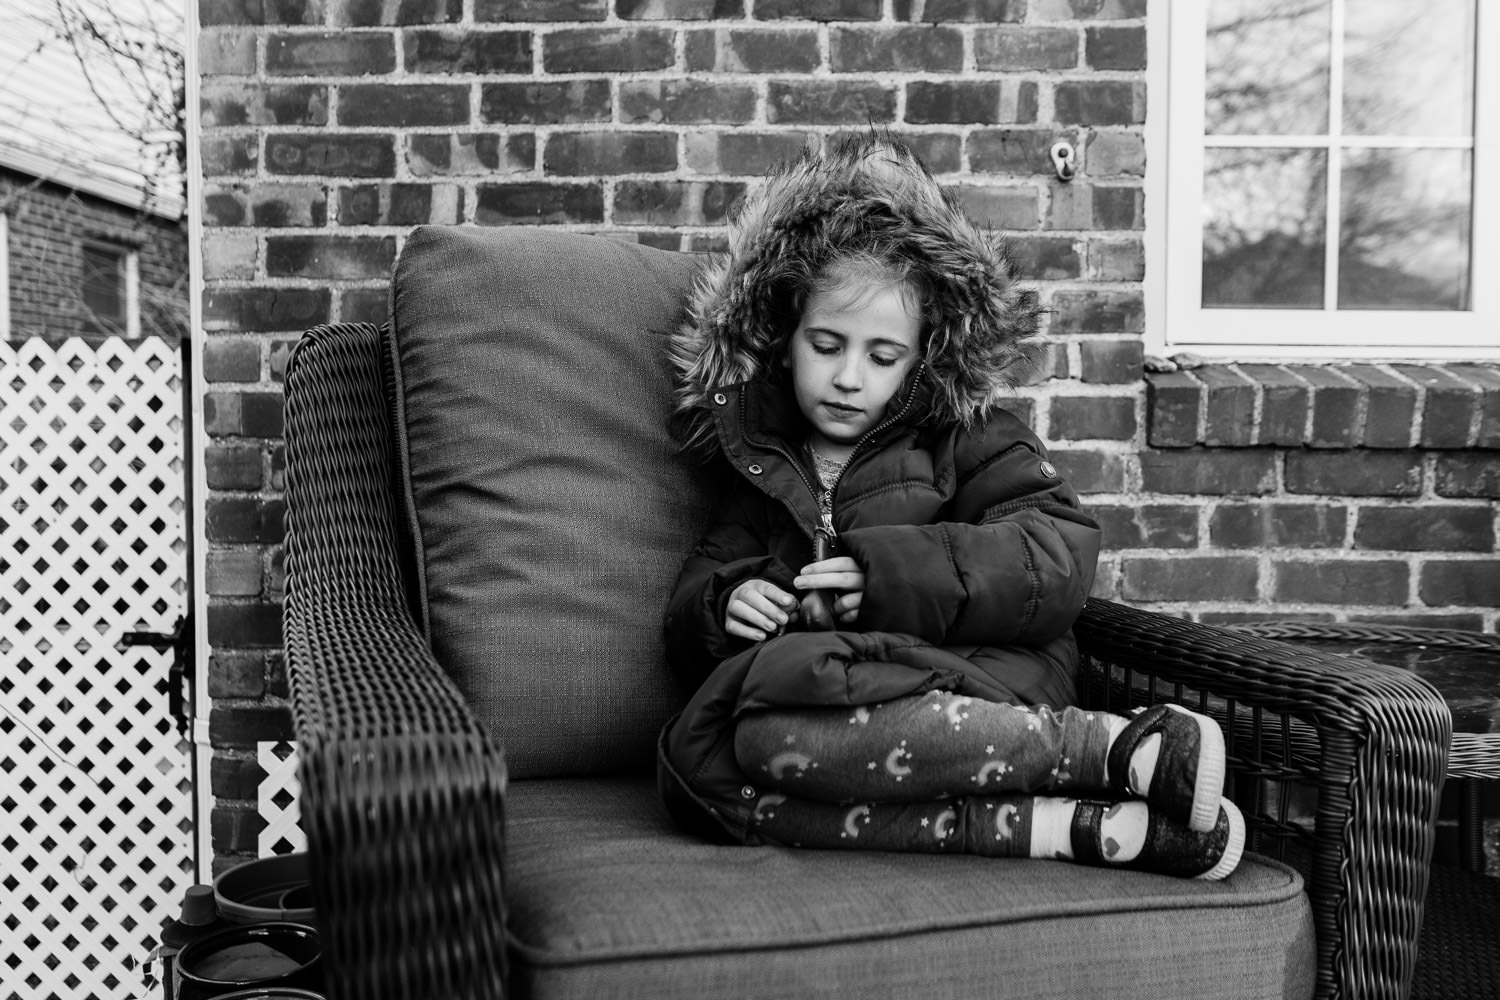 A little girl wearing a parka sits outside on a porch.